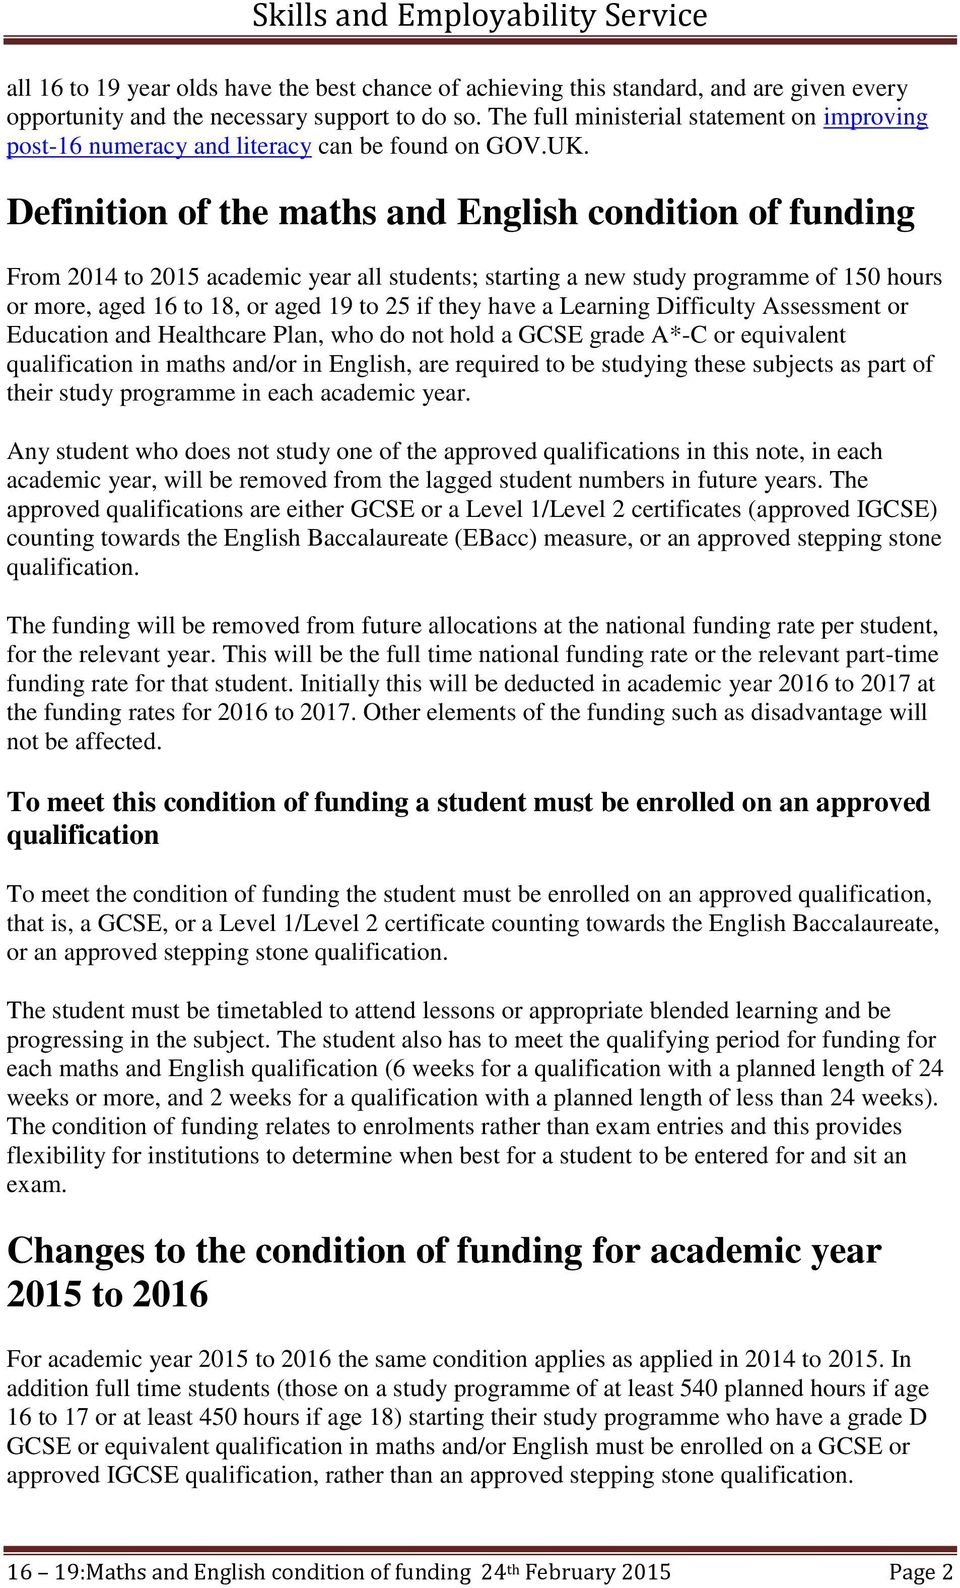 Definition of the maths and English condition of funding From 2014 to 2015 academic year all students; starting a new study programme of 150 hours or more, aged 16 to 18, or aged 19 to 25 if they